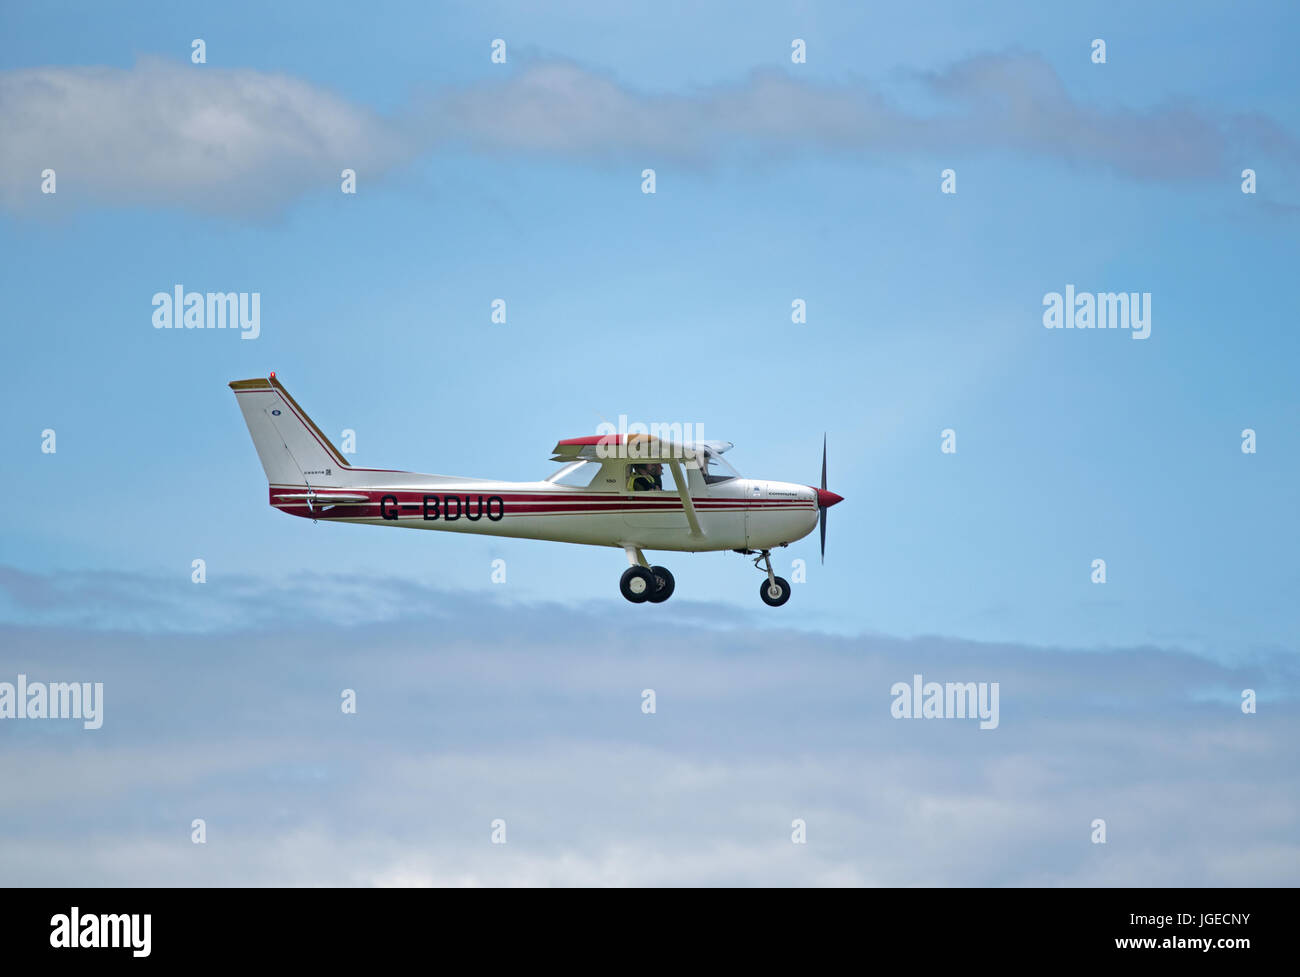 A Cessna 150m private light aircraft working out from Inverness Dalcross airport on a weekend flying sortie. Stock Photo